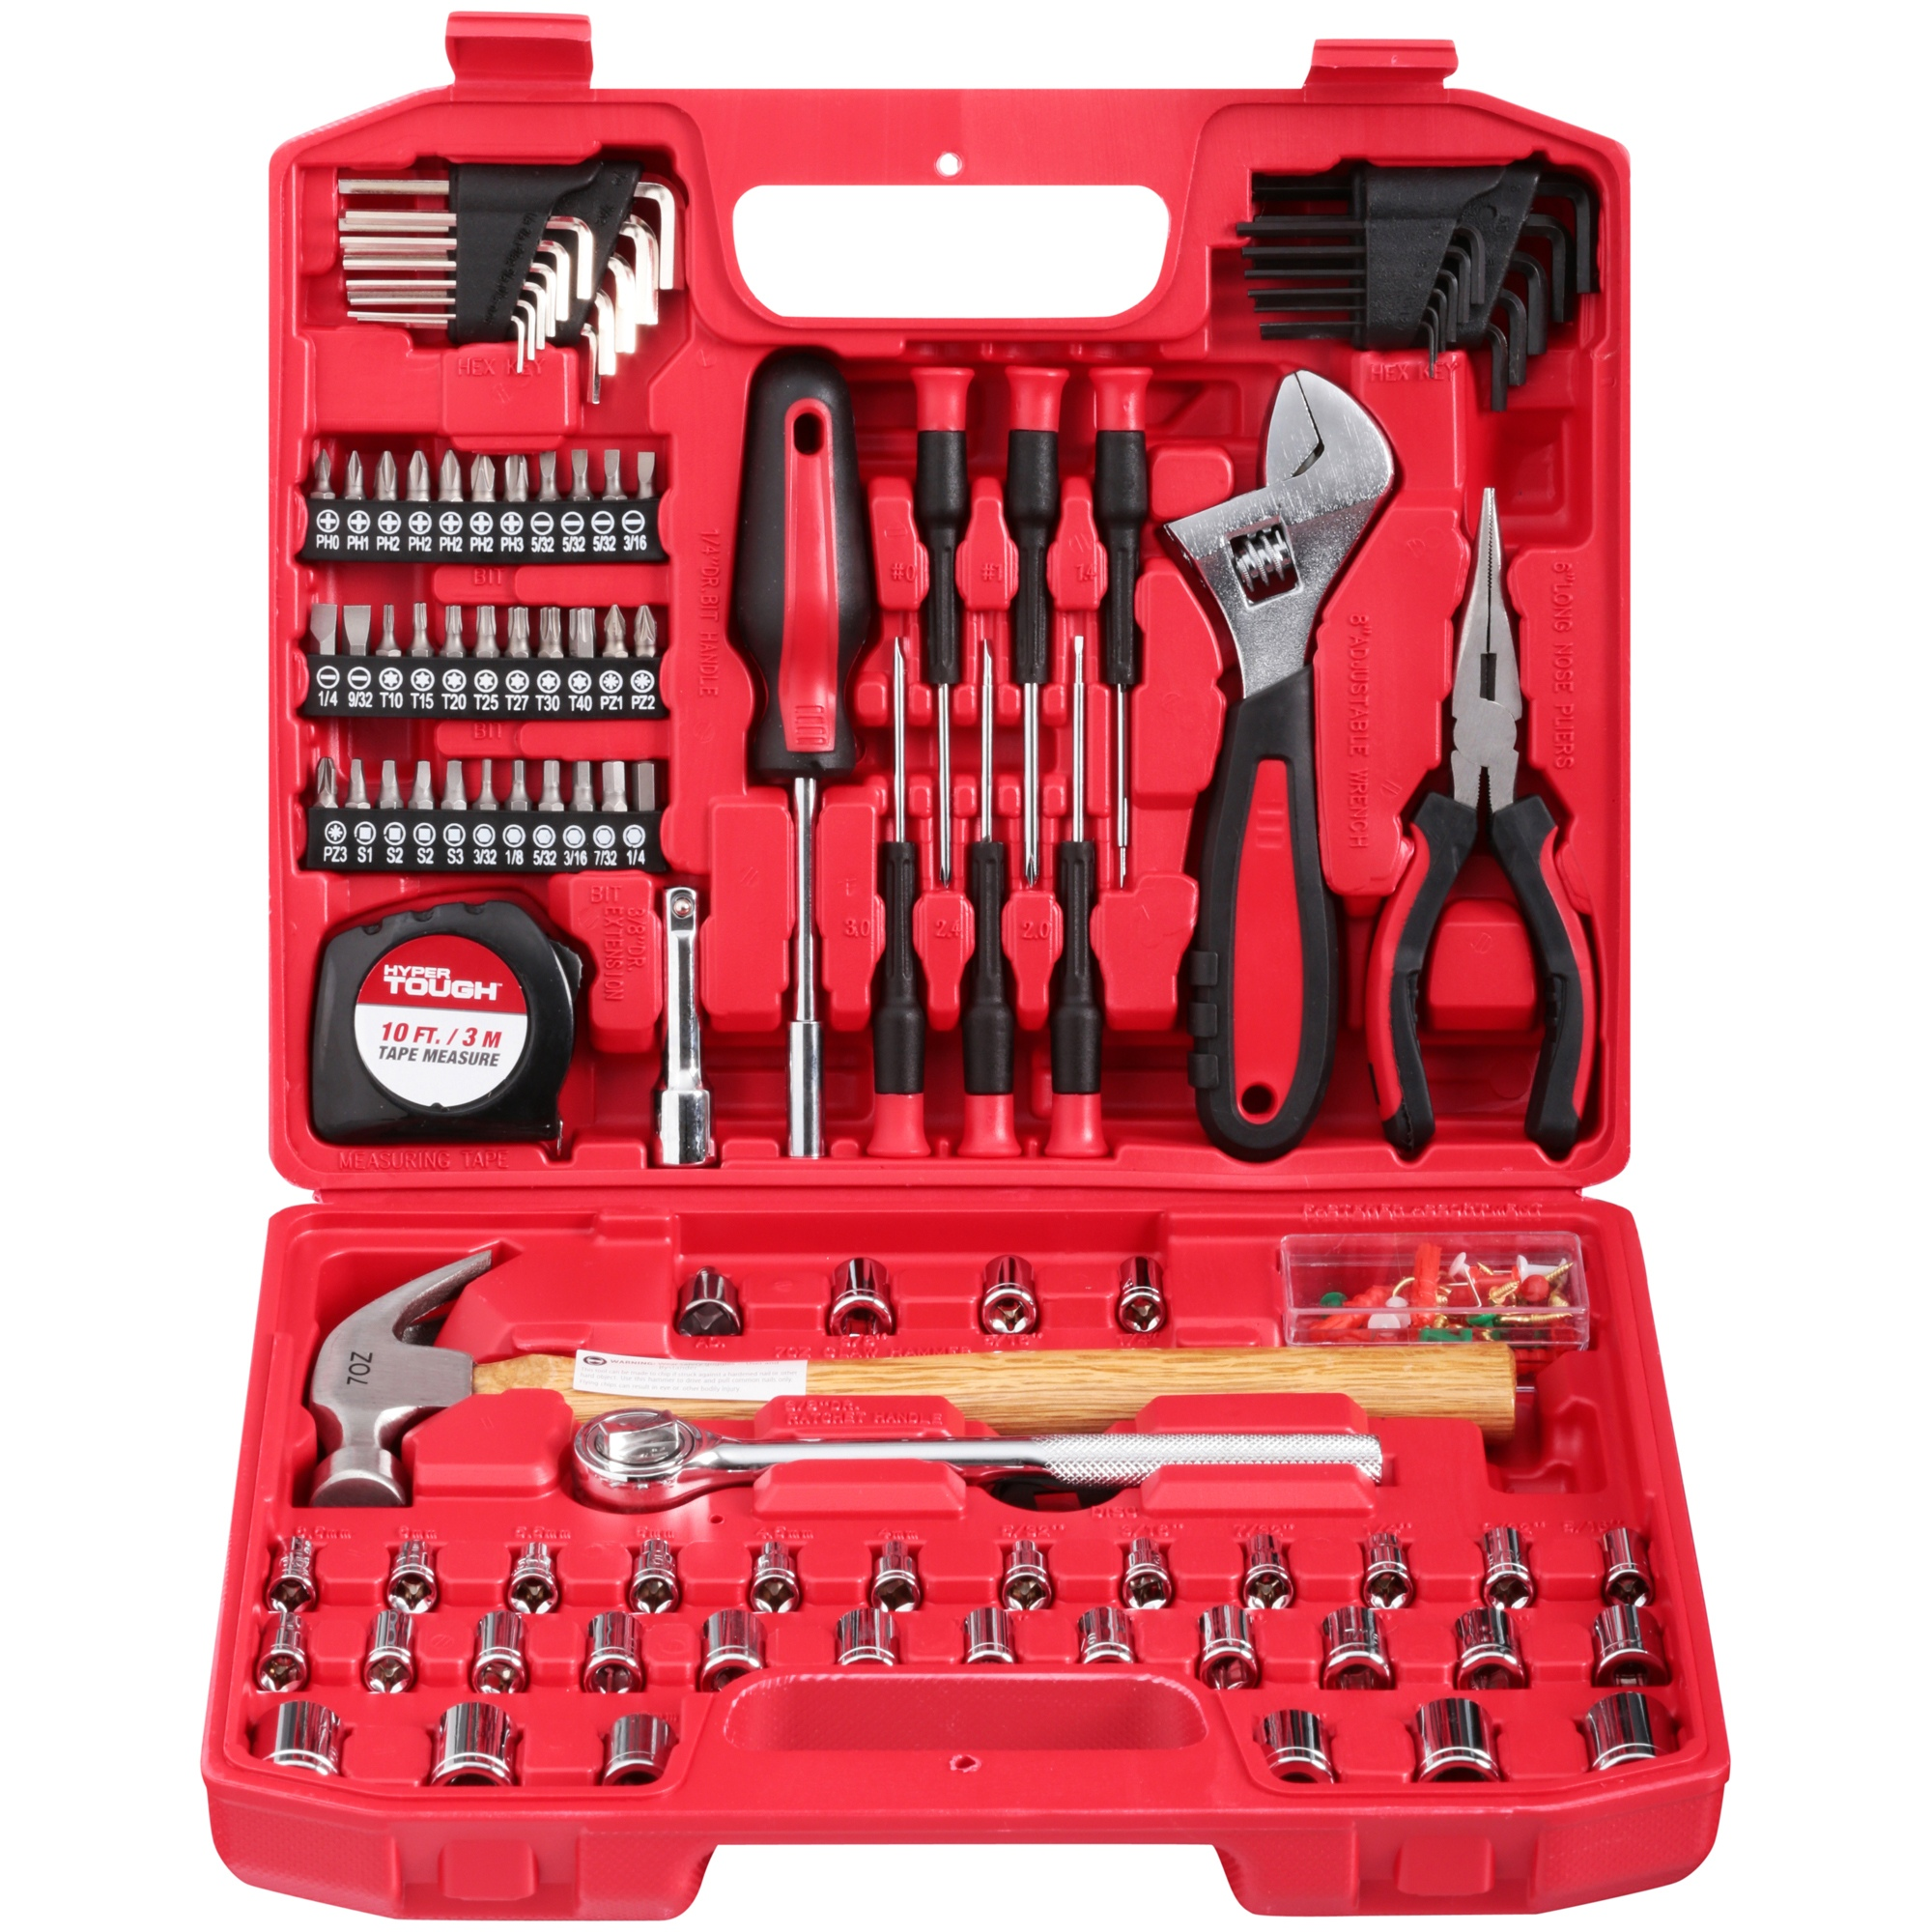 "Hyper Tough 110-Piece 1/4"" and 3/8"" Drive Home Repair Tool Set"